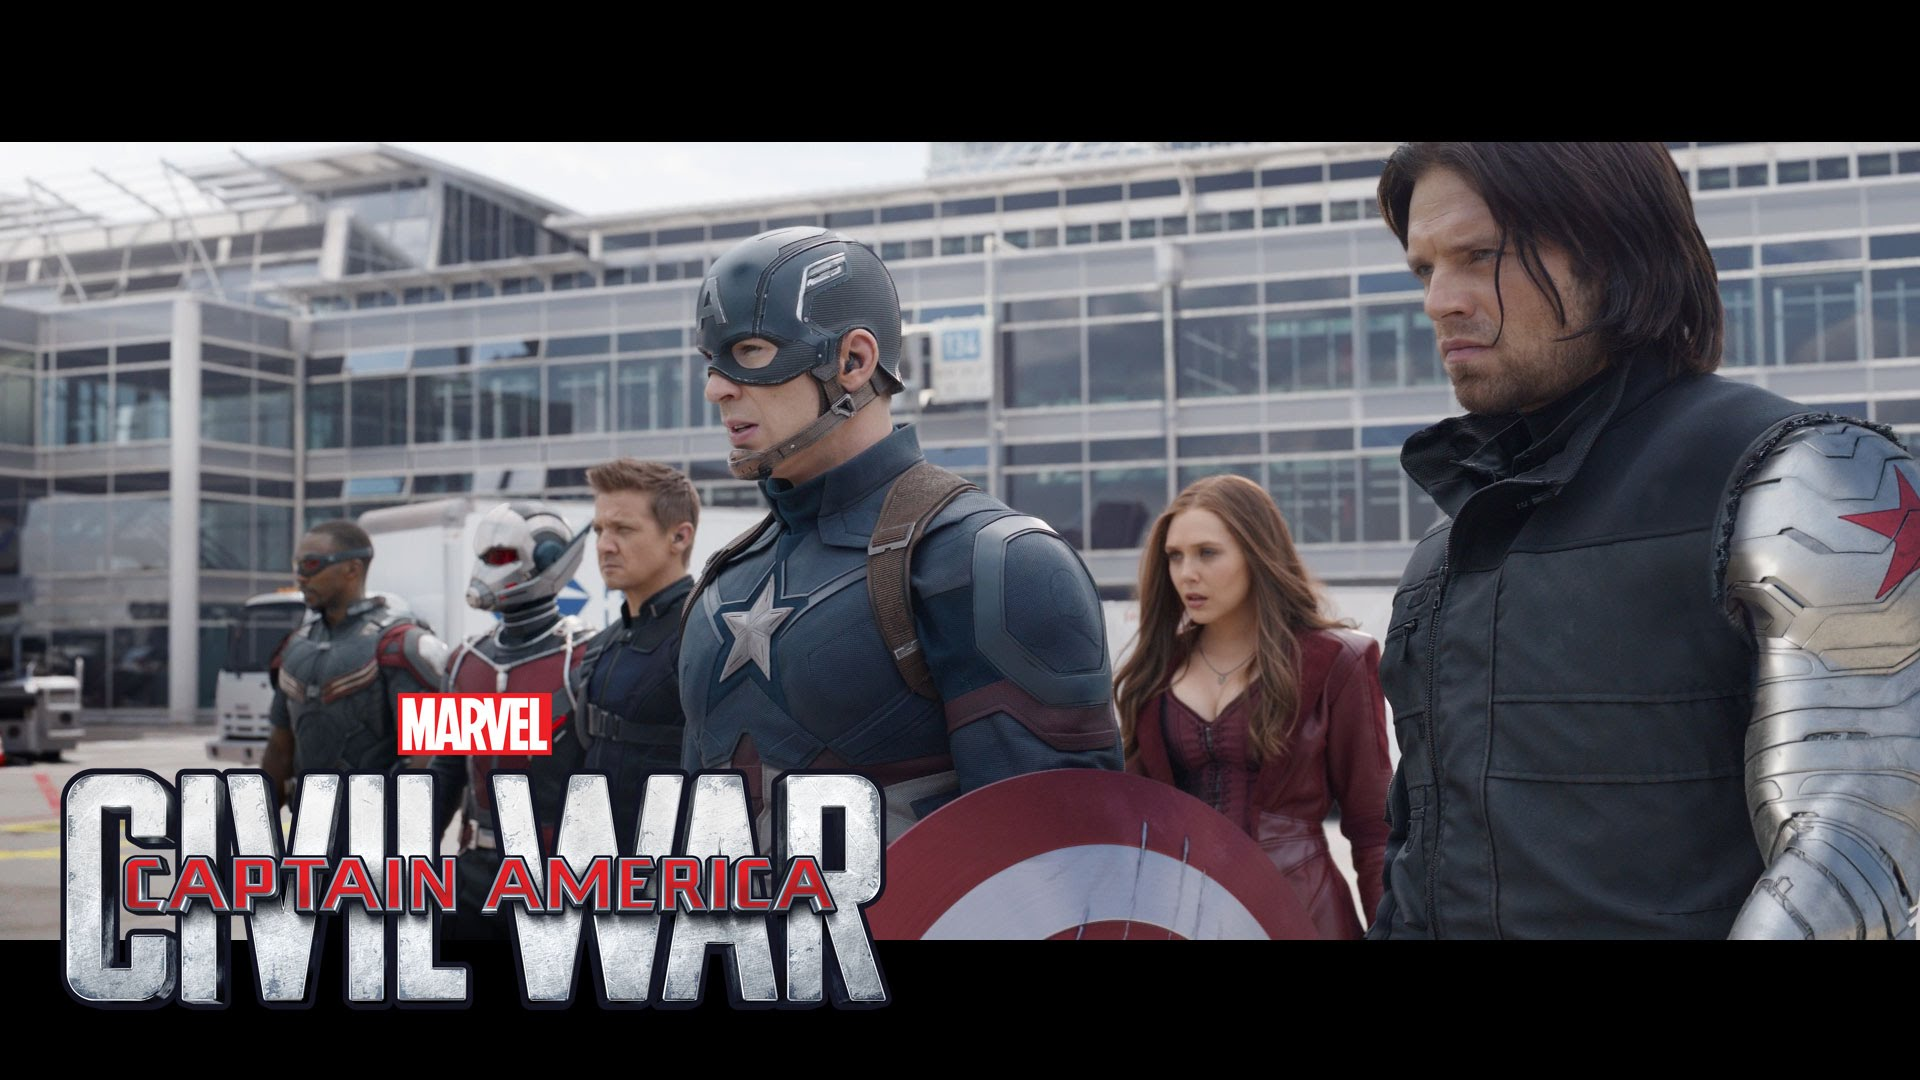 The Safest Hands - Marvel's Captain America: Civil War